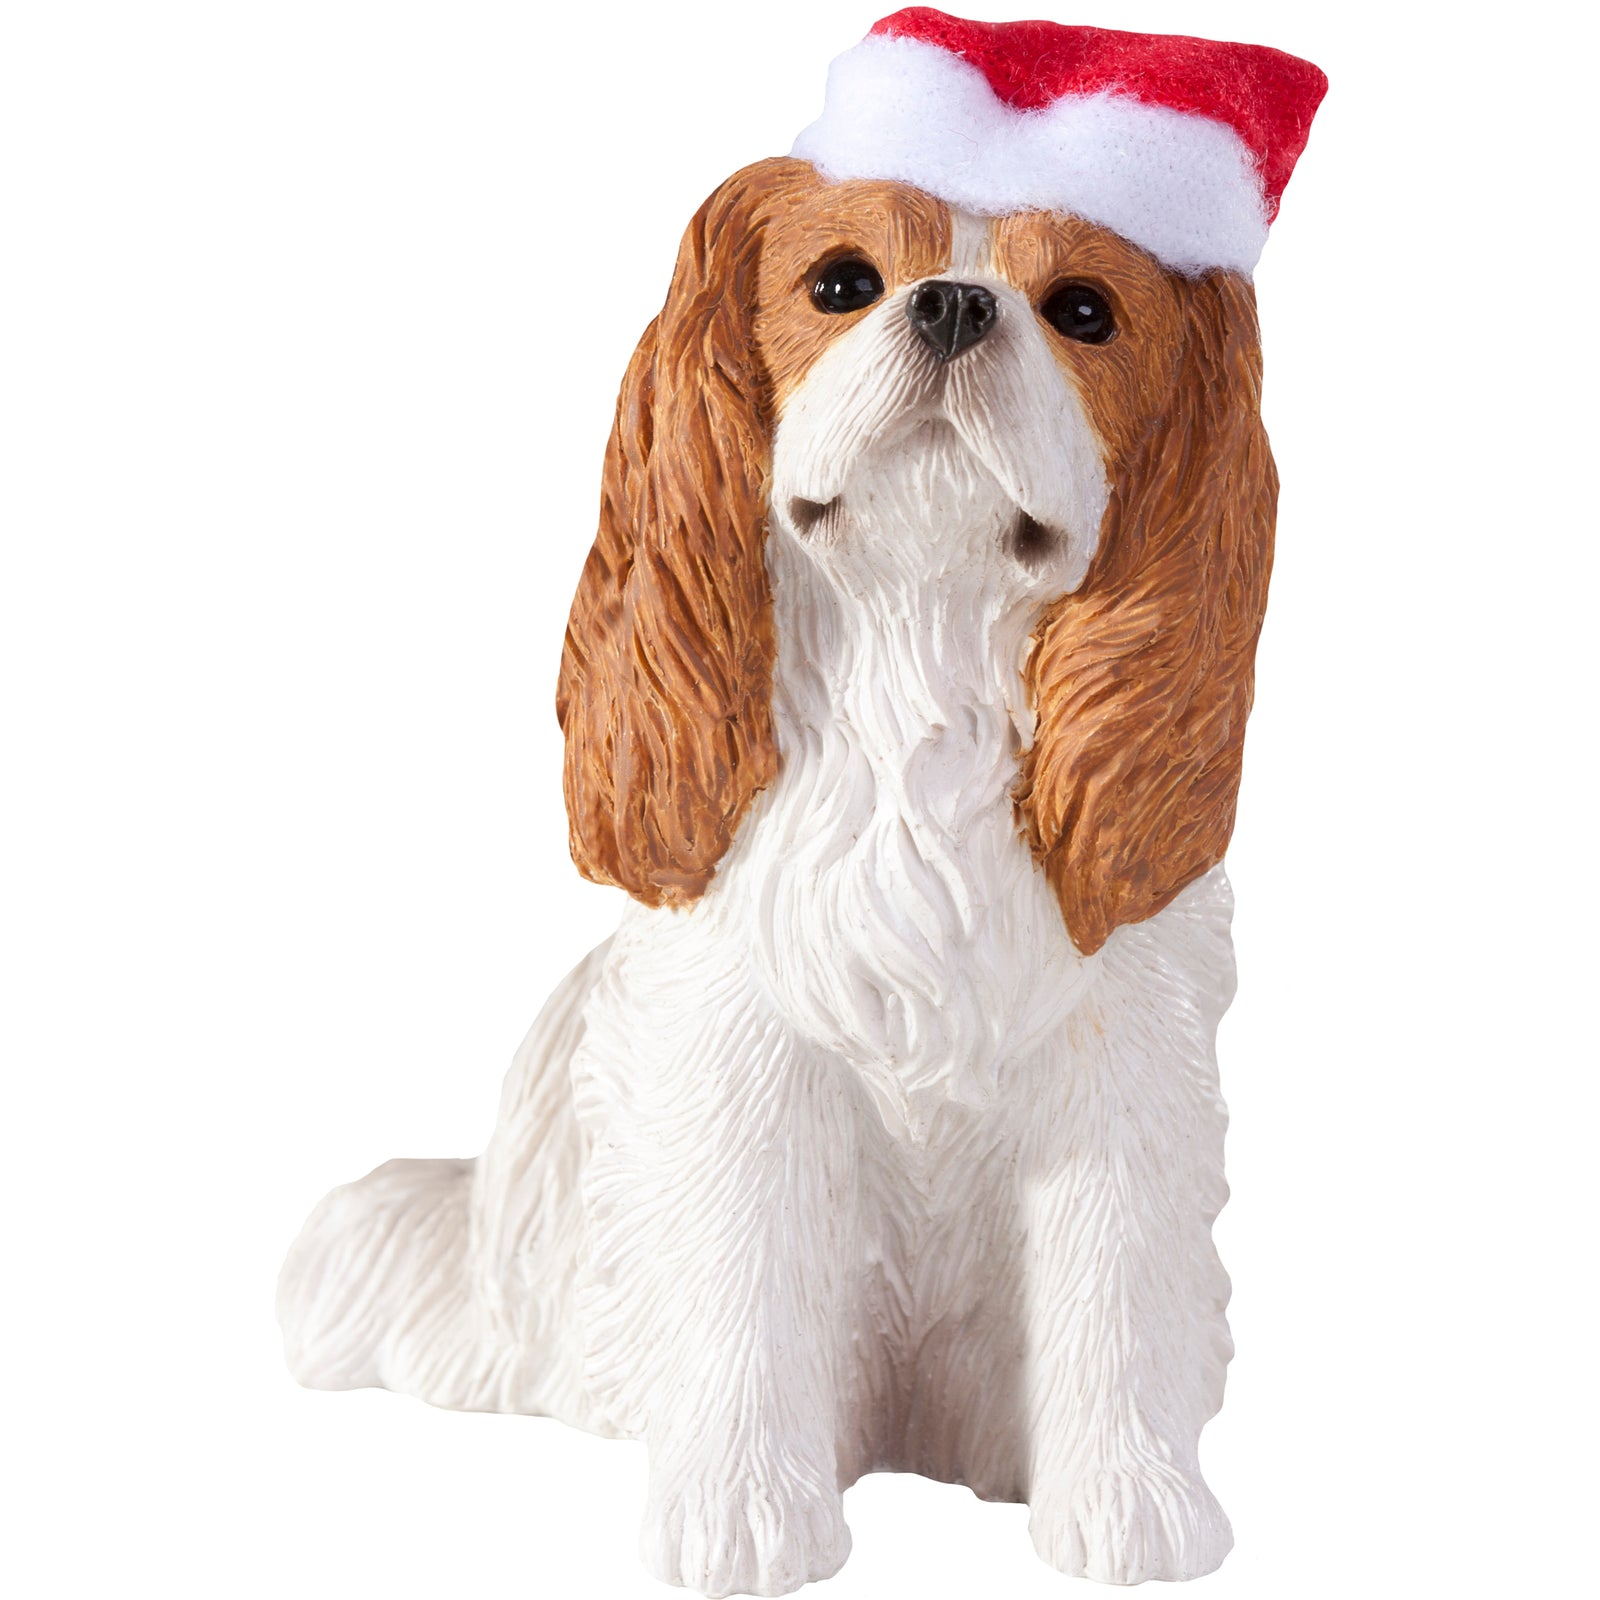 Sandicast Sitting Cavalier King Charles w/ Santa's Hat Christmas Dog Ornament